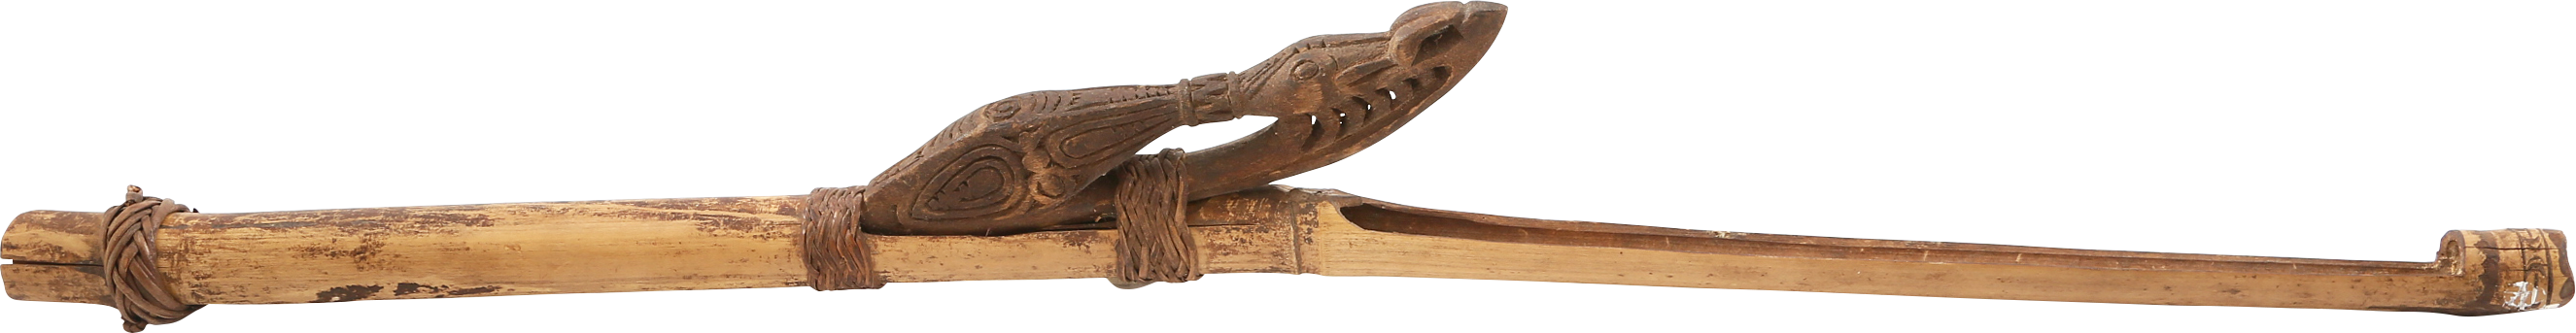 GOOD NEW GUINEA SPEAR THROWER.